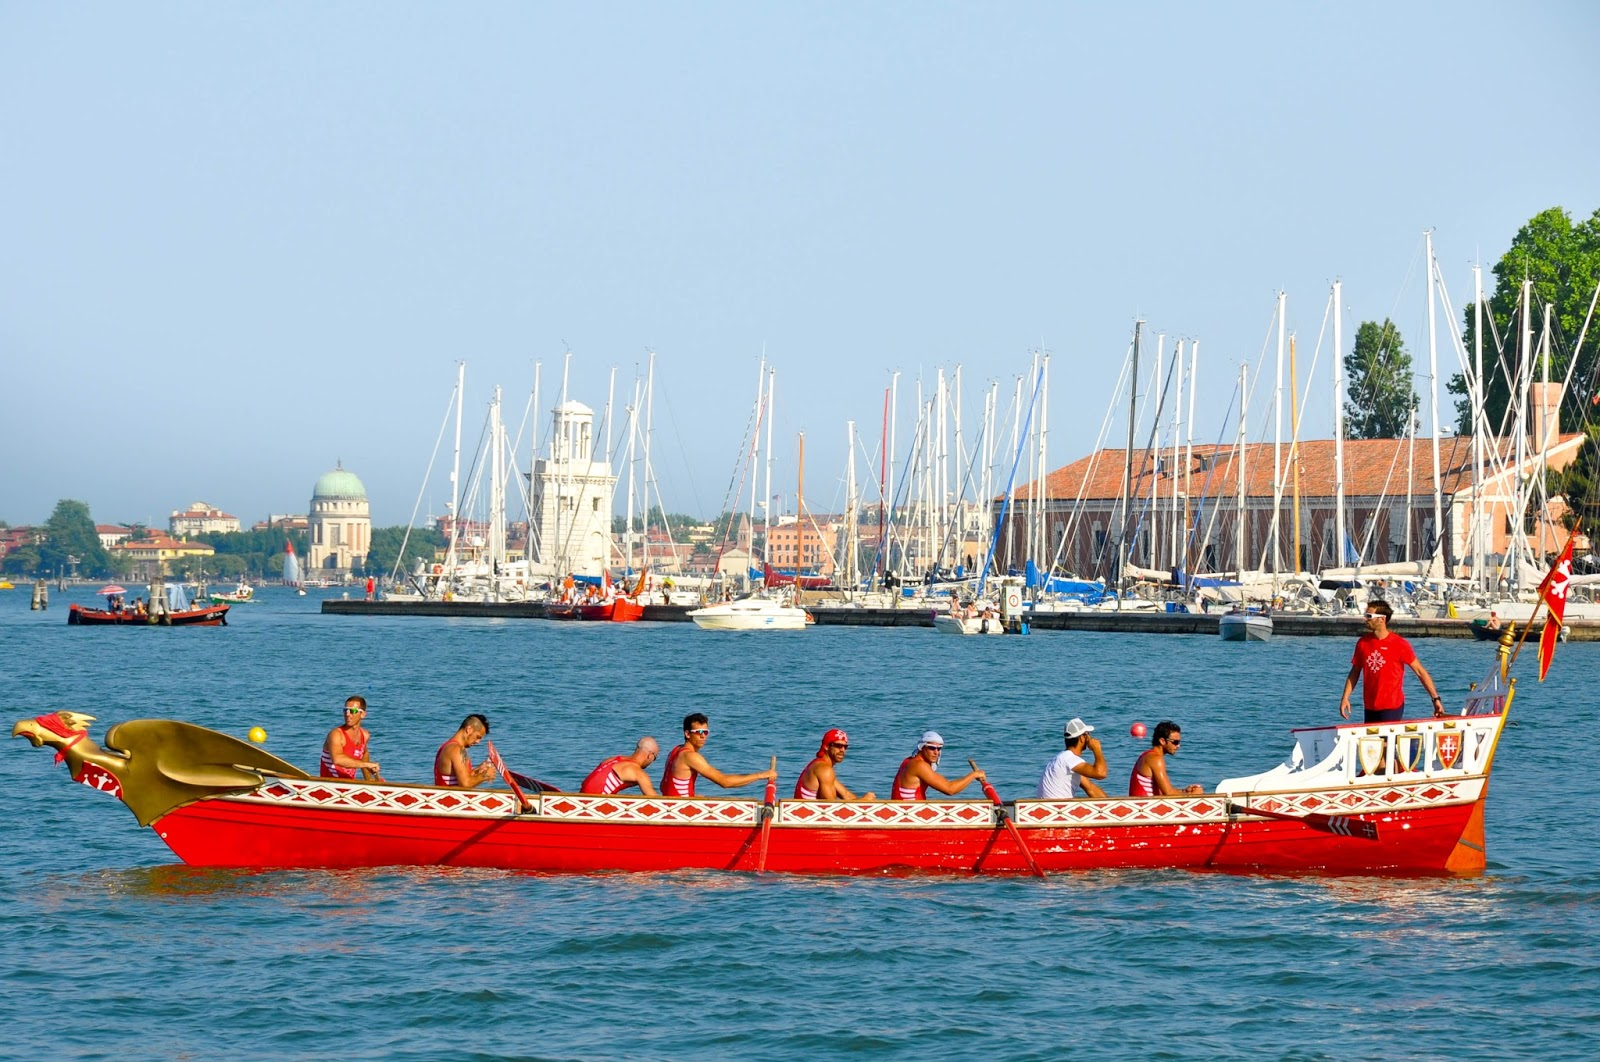 Pisa's boat, Regatta of the Ancient Maritime Republics, Venice, Italy